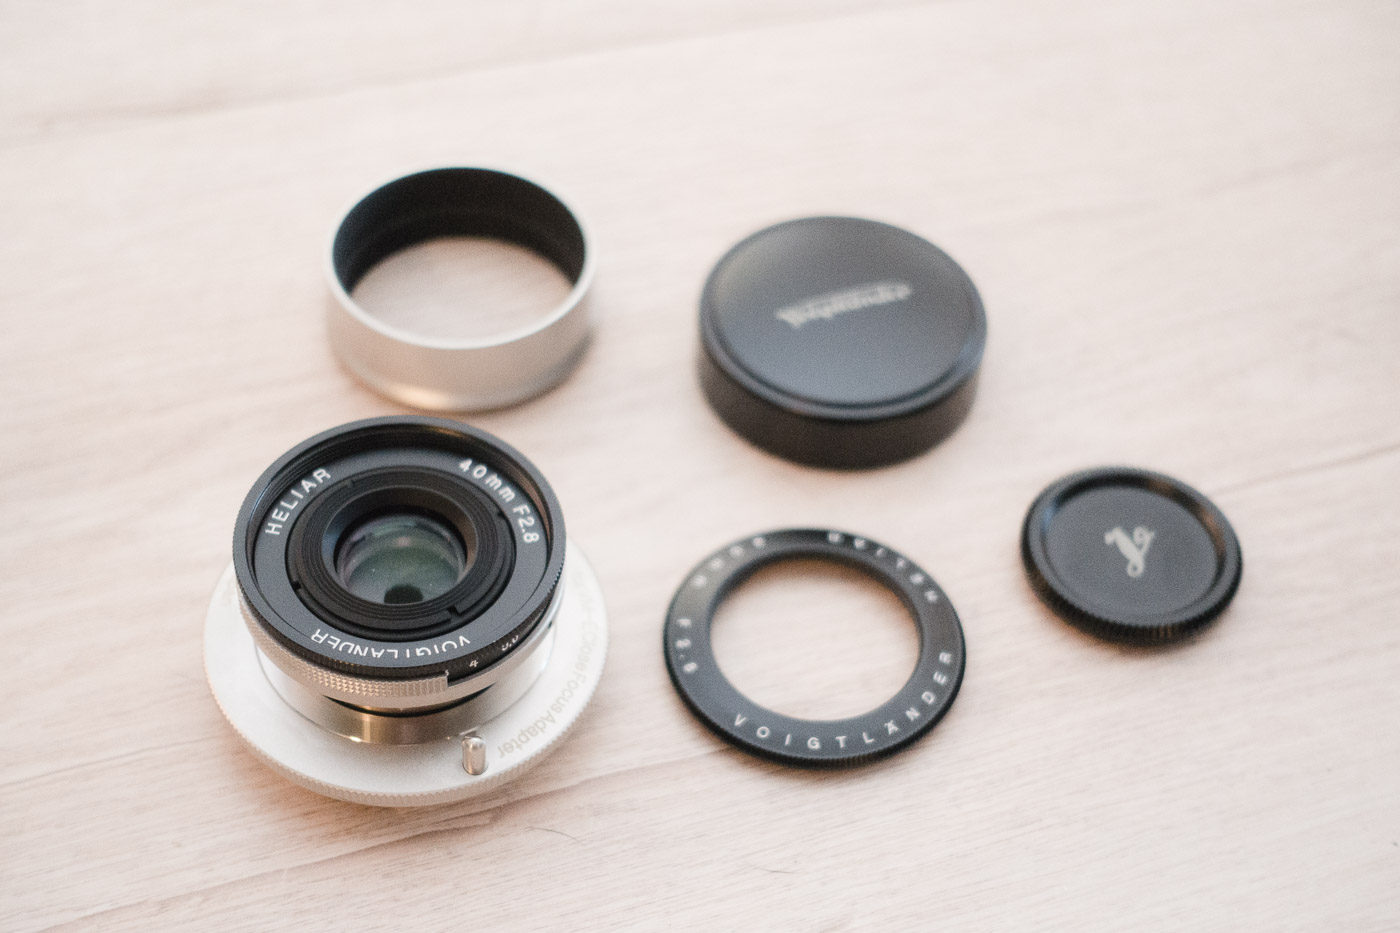 voigtlander-40mm-heliar-lens-review-7